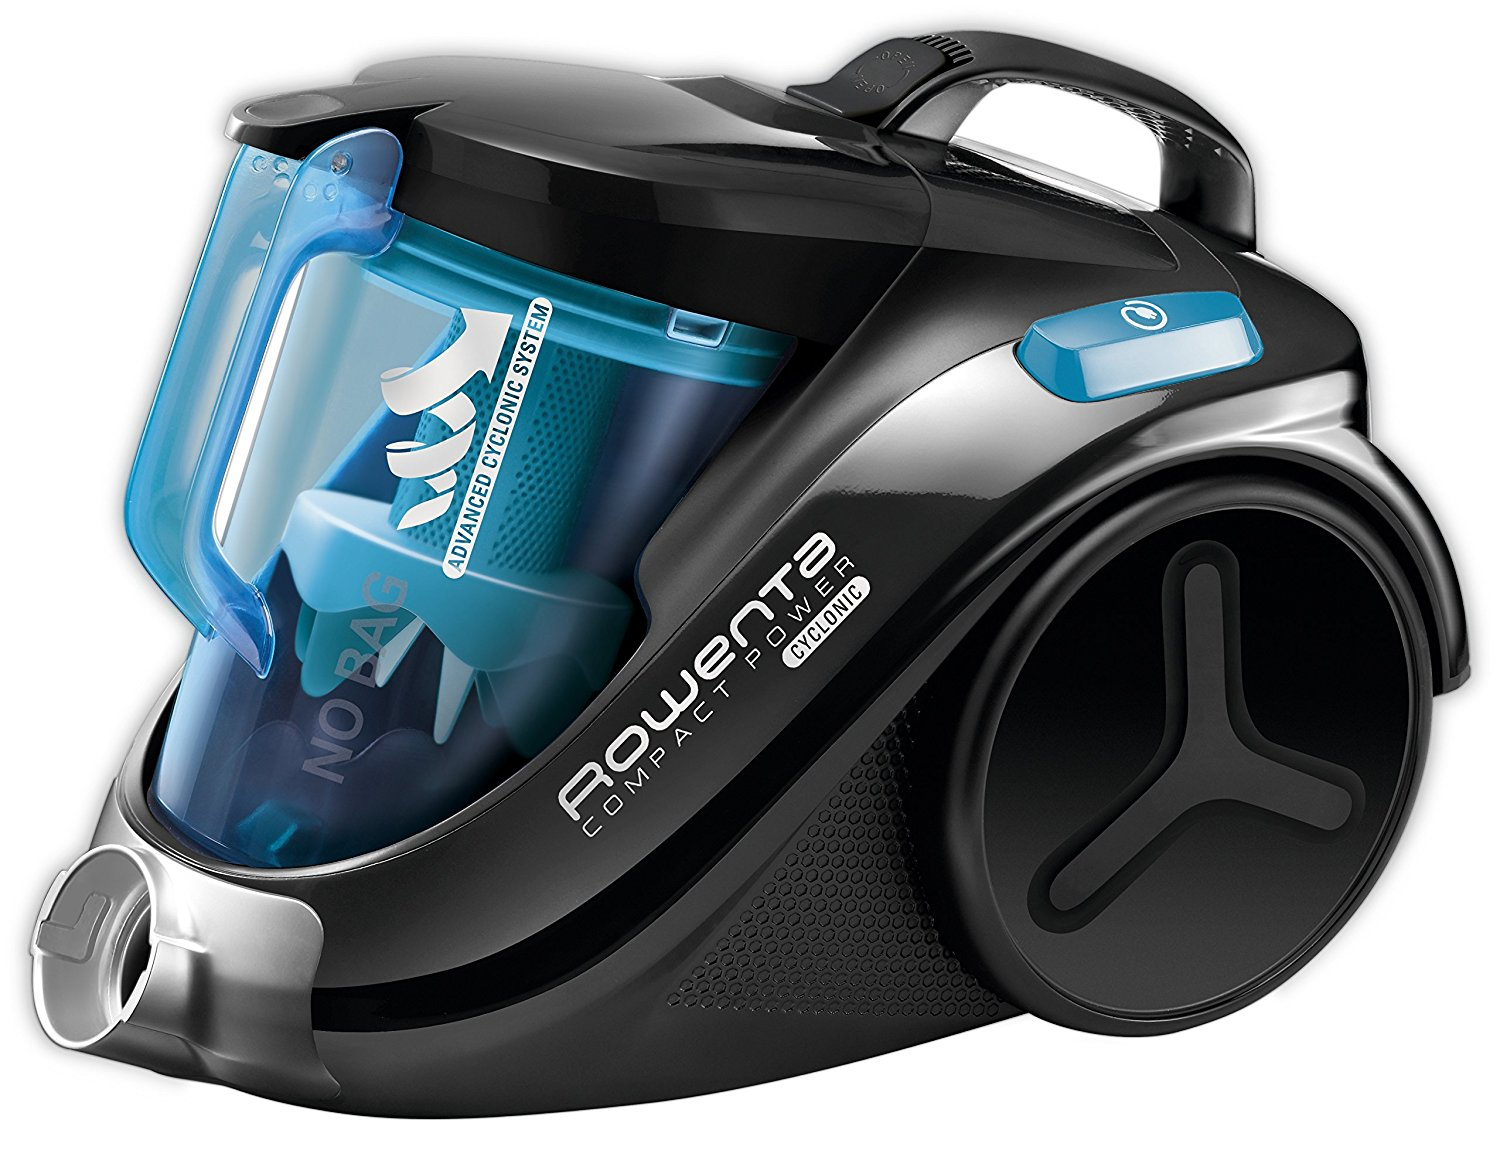 aspirateur sans sac Rowenta Compact Power